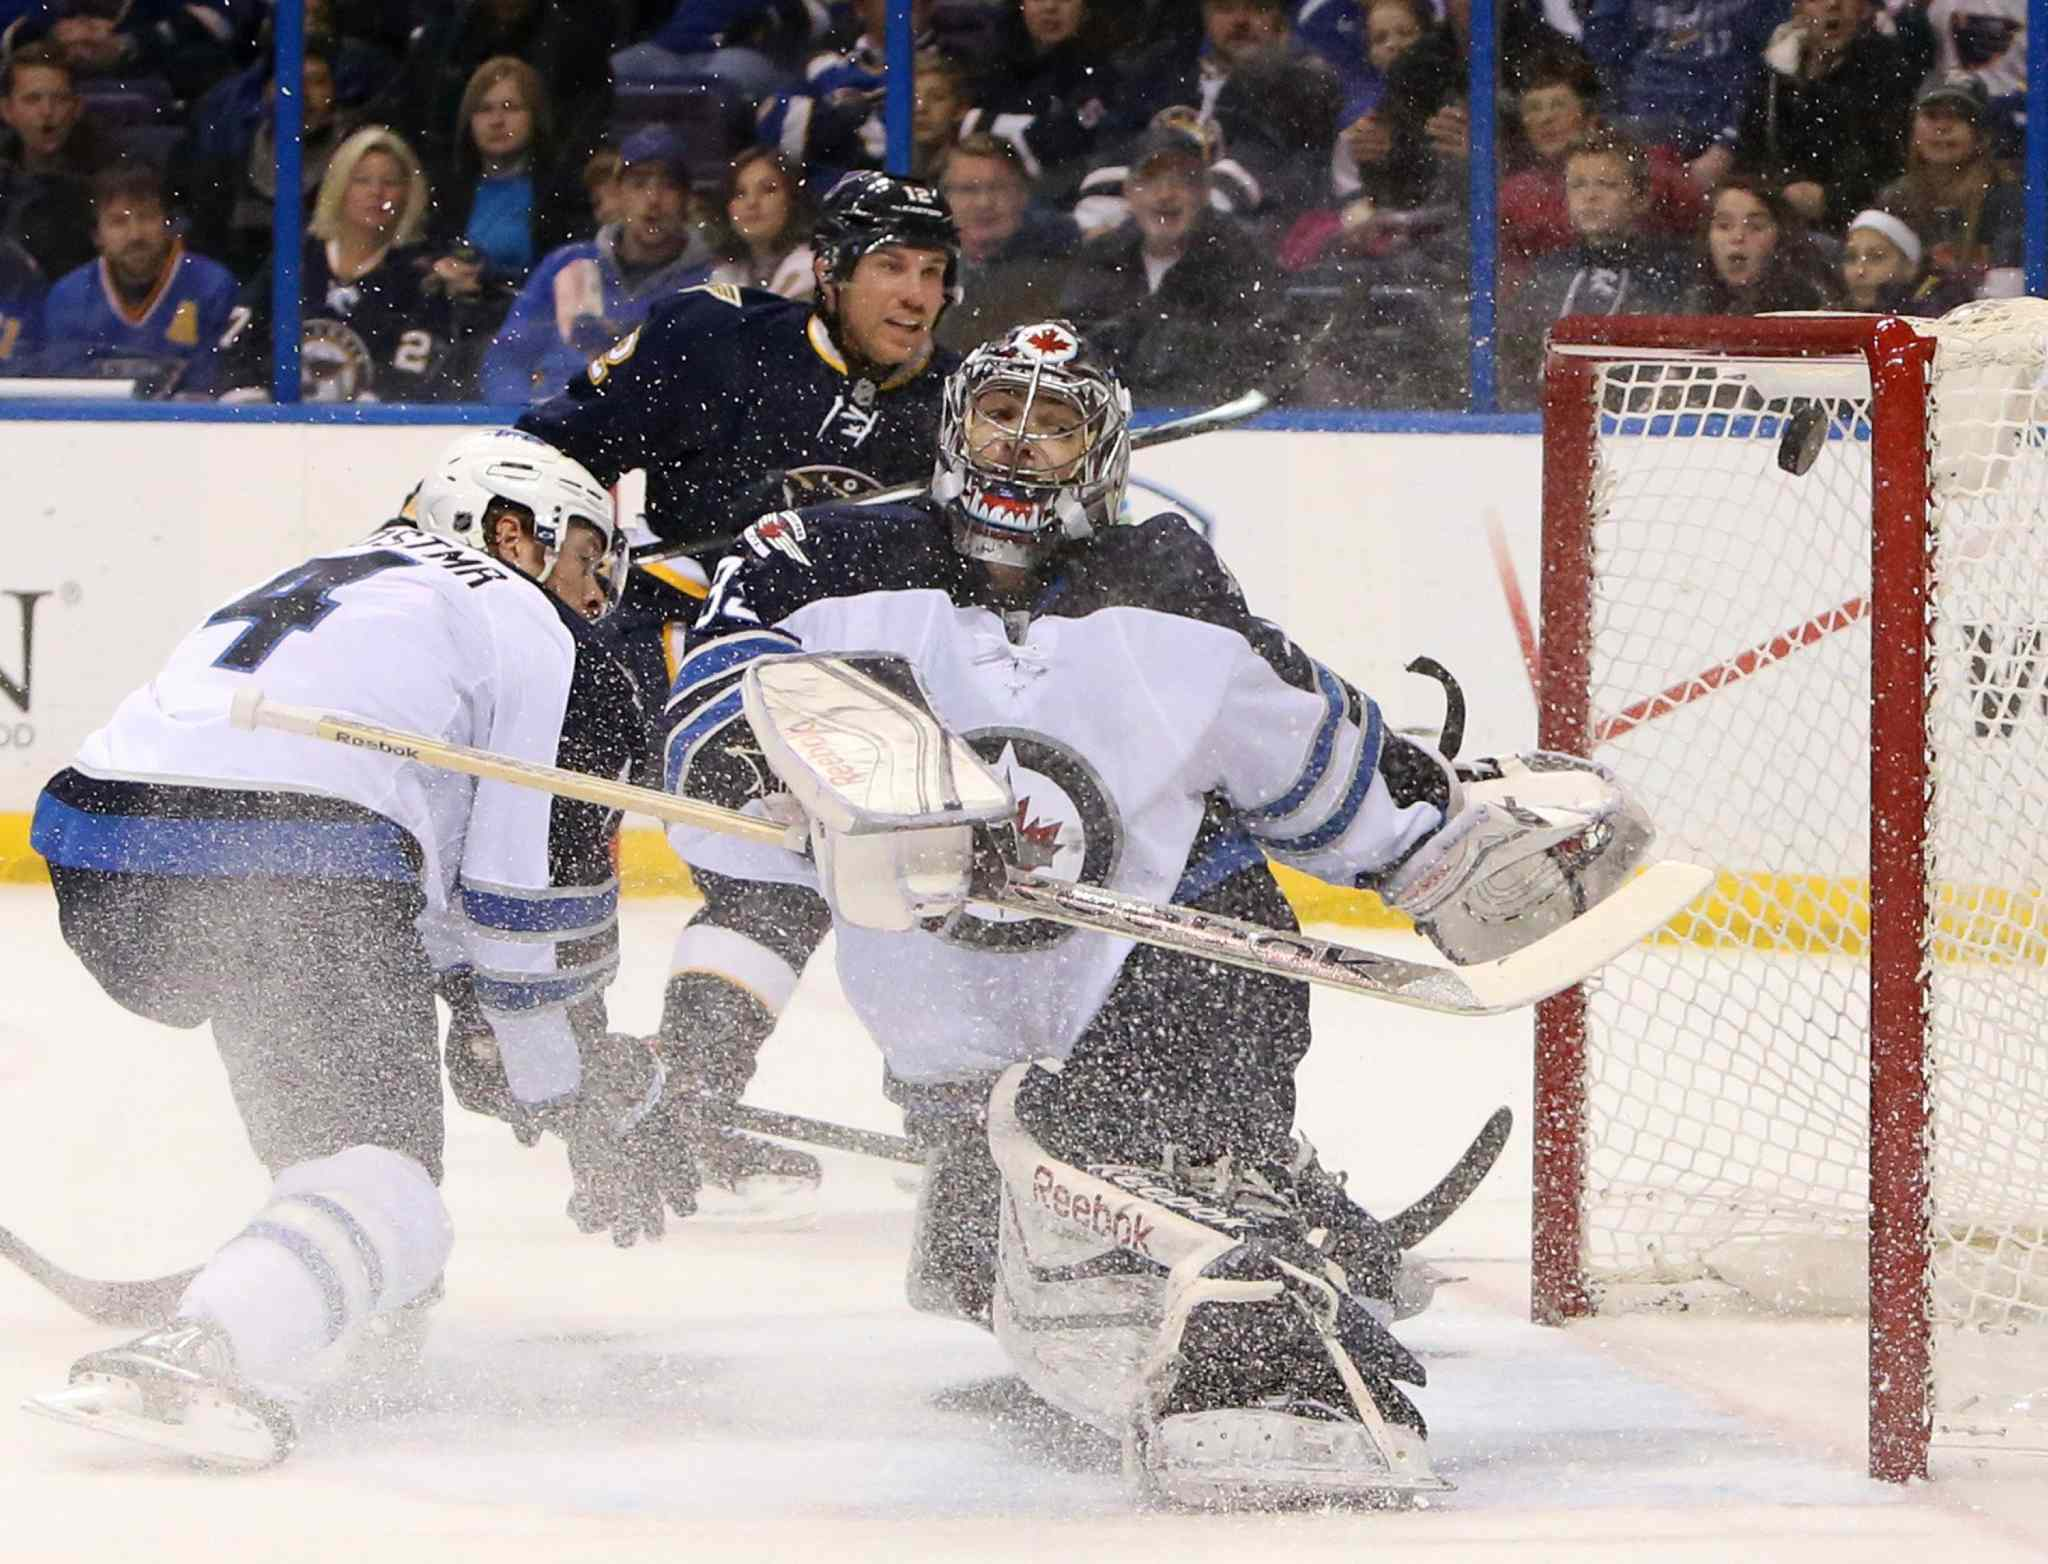 Derk Roy, back, scores against Winnipeg Jets' goalie Al Montoya on Saturday in St. Louis.